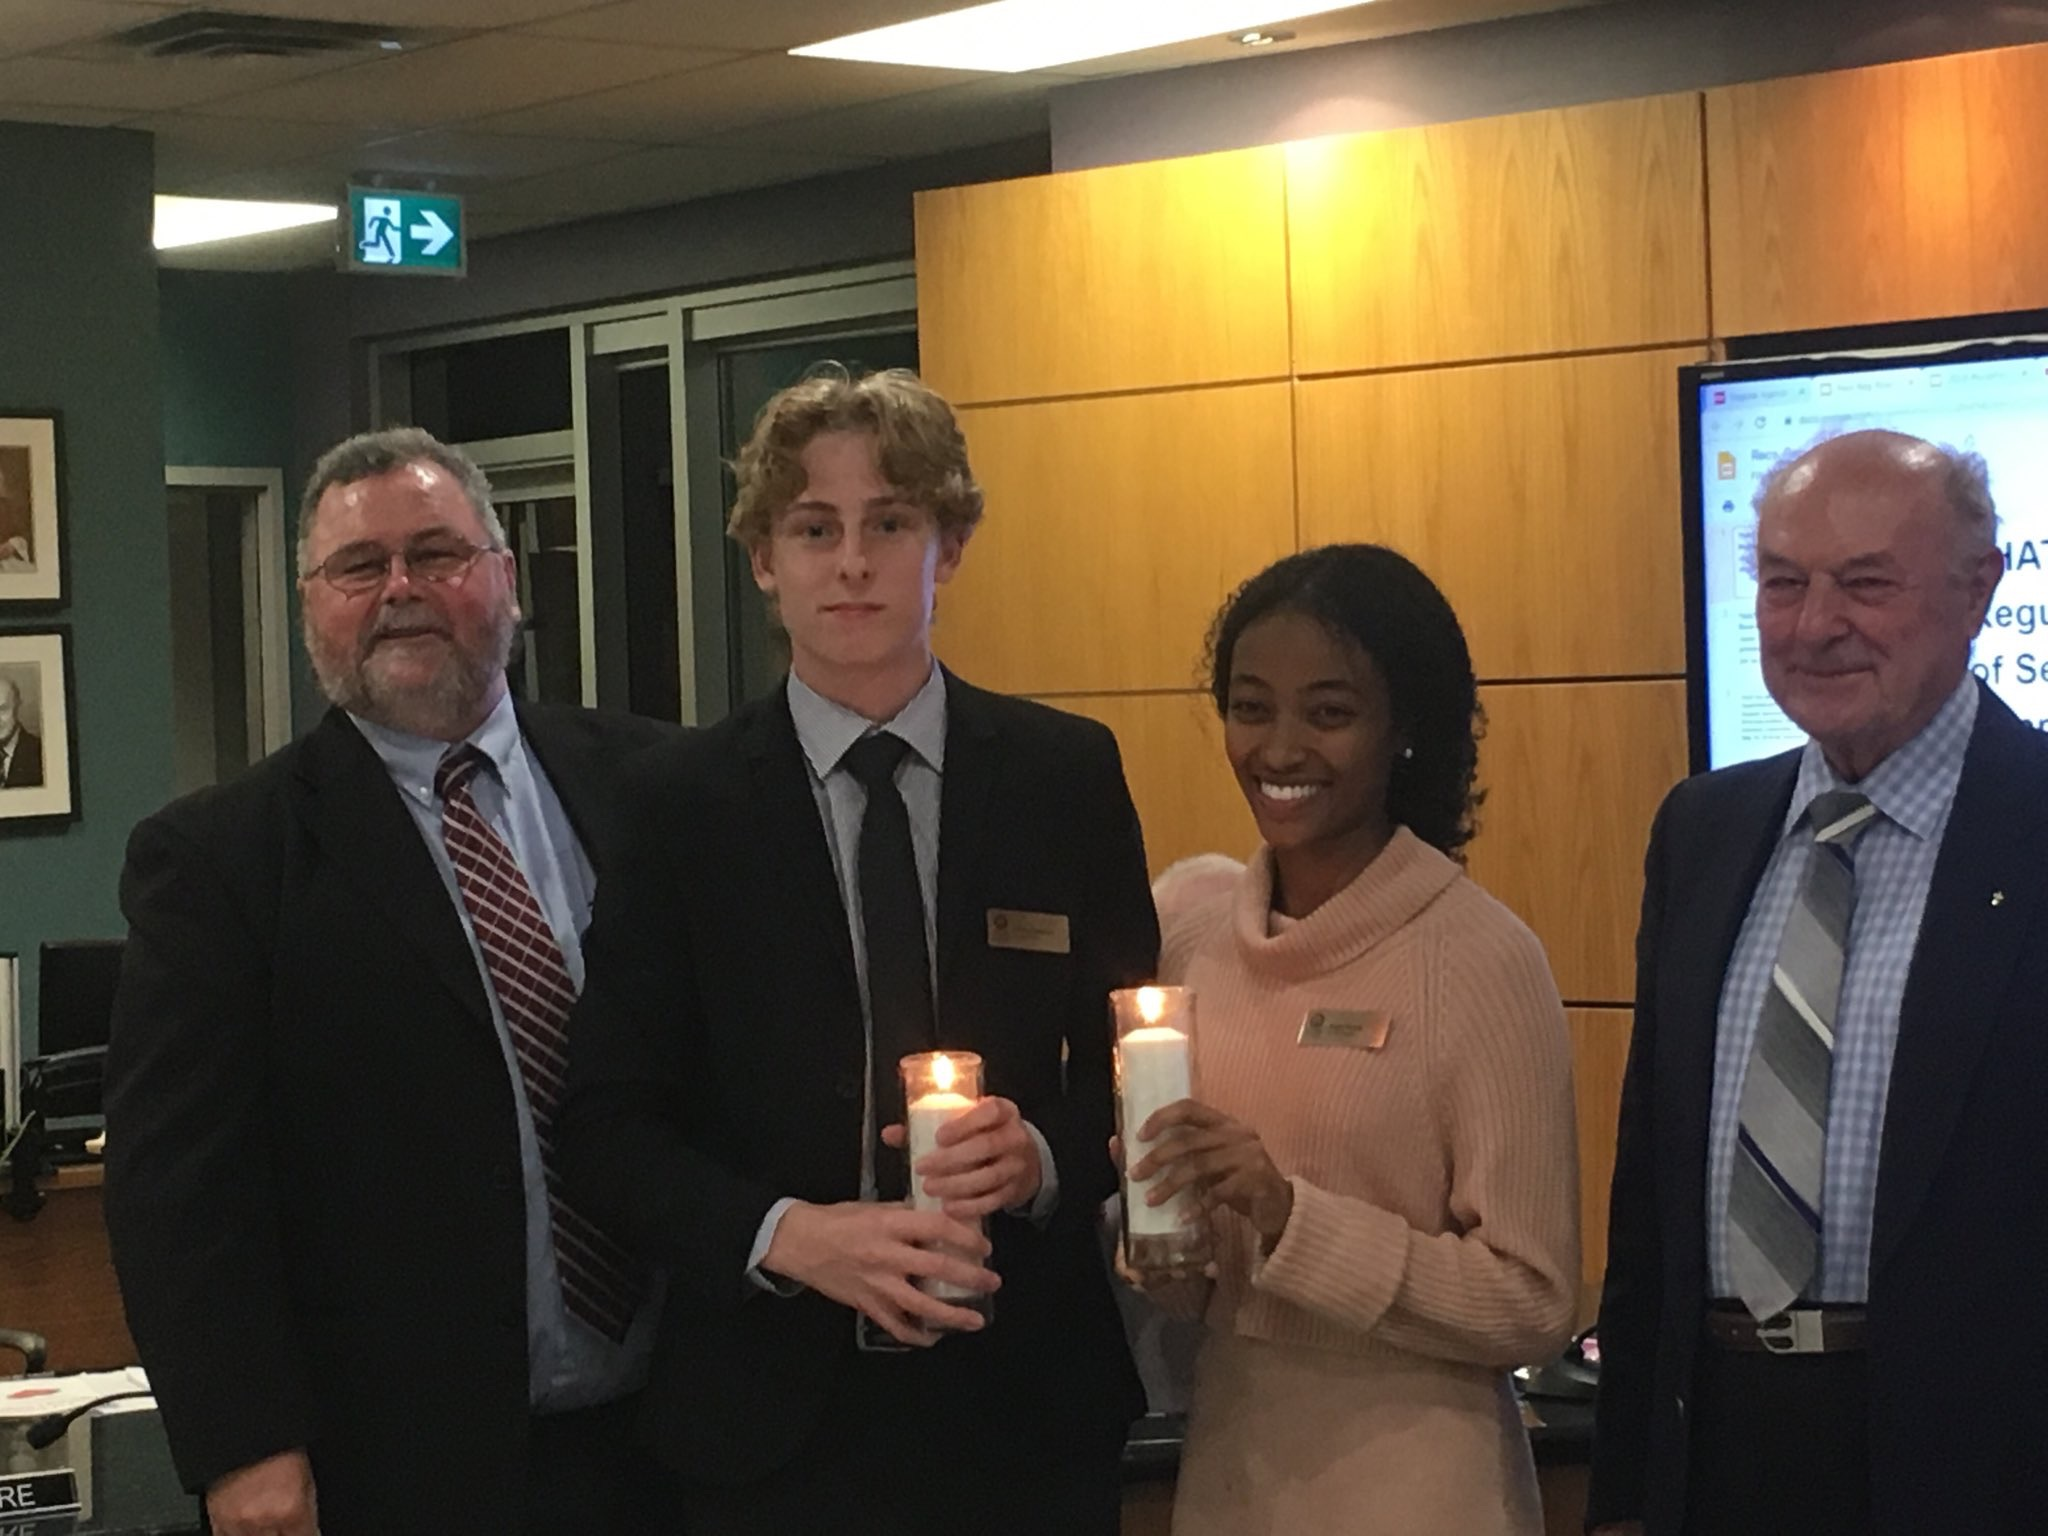 Left to right: Board Chairperson Mark Mullan, Student Trustees Sangni Kuma and Carlos Sanchez, and Board Chaplain Fr. Peter Sanders